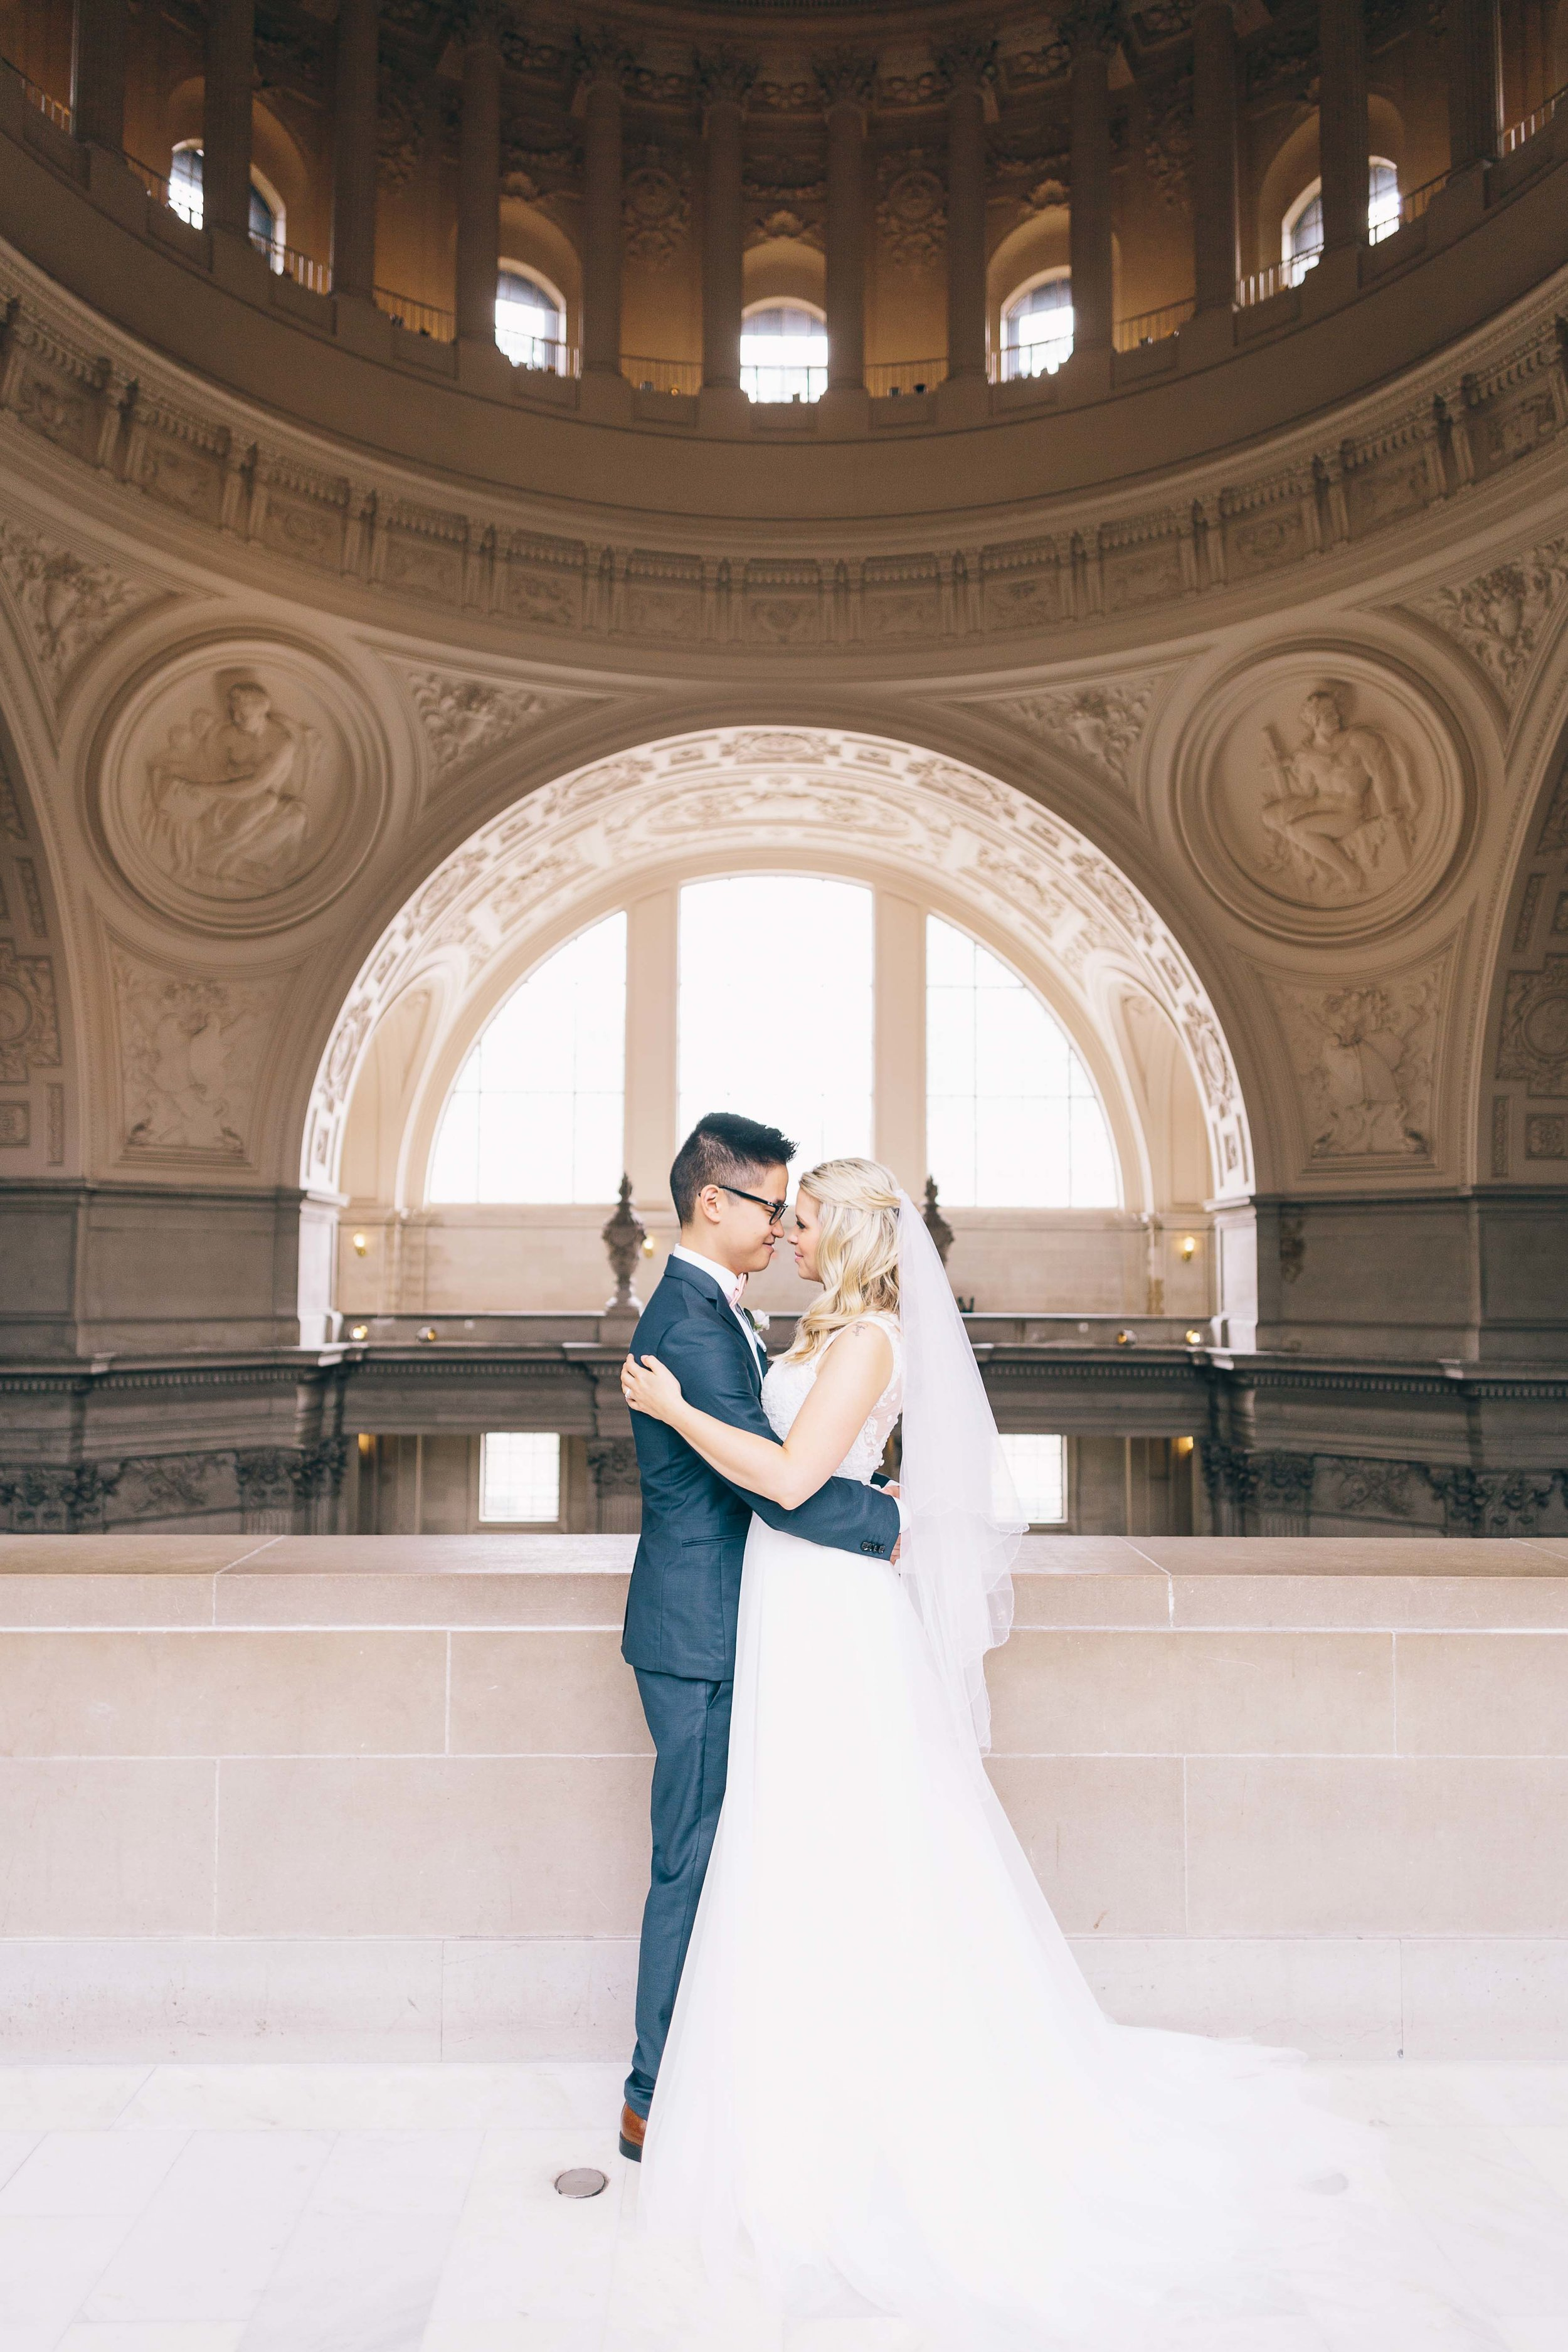 San Francisco City Hall Pre-Wedding Photos by JBJ Pictures - SF City Hall Wedding and Engagement Photos (17).jpg